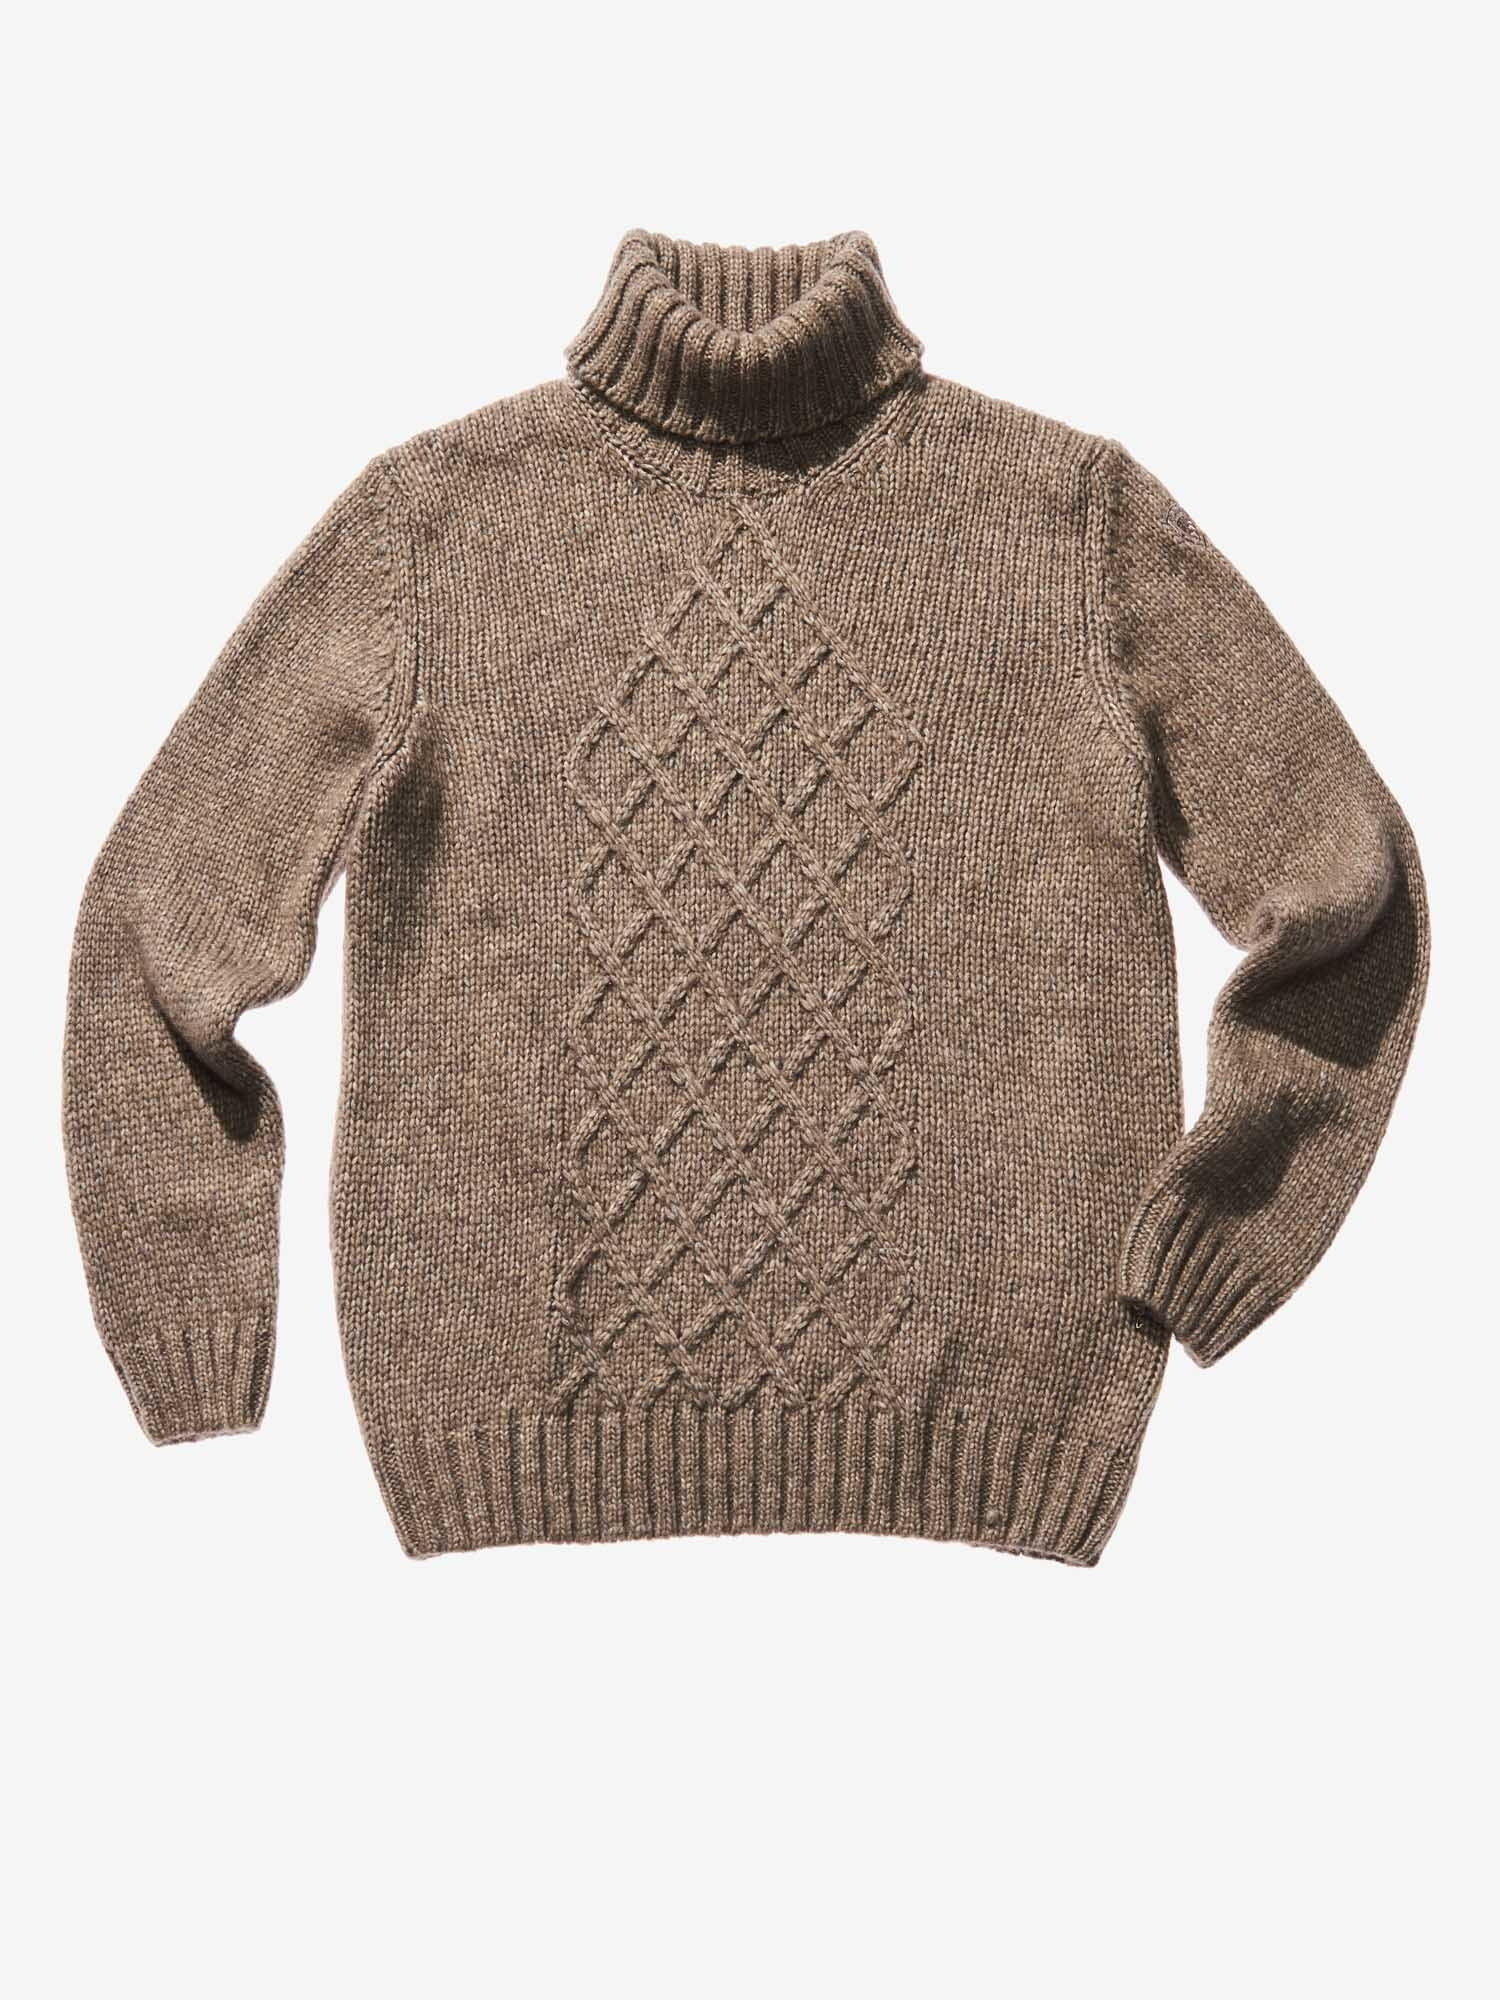 Blauer - WOOL COTTON TURTLENECK - Melainge Hazelnut - Blauer